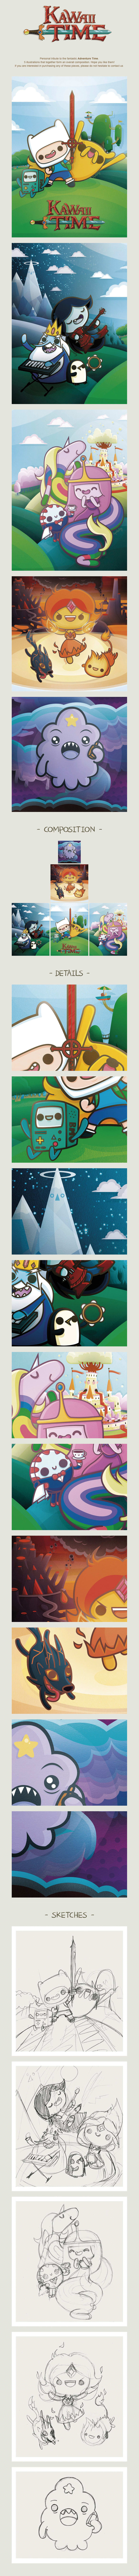 Kawaii Adventure Time 26